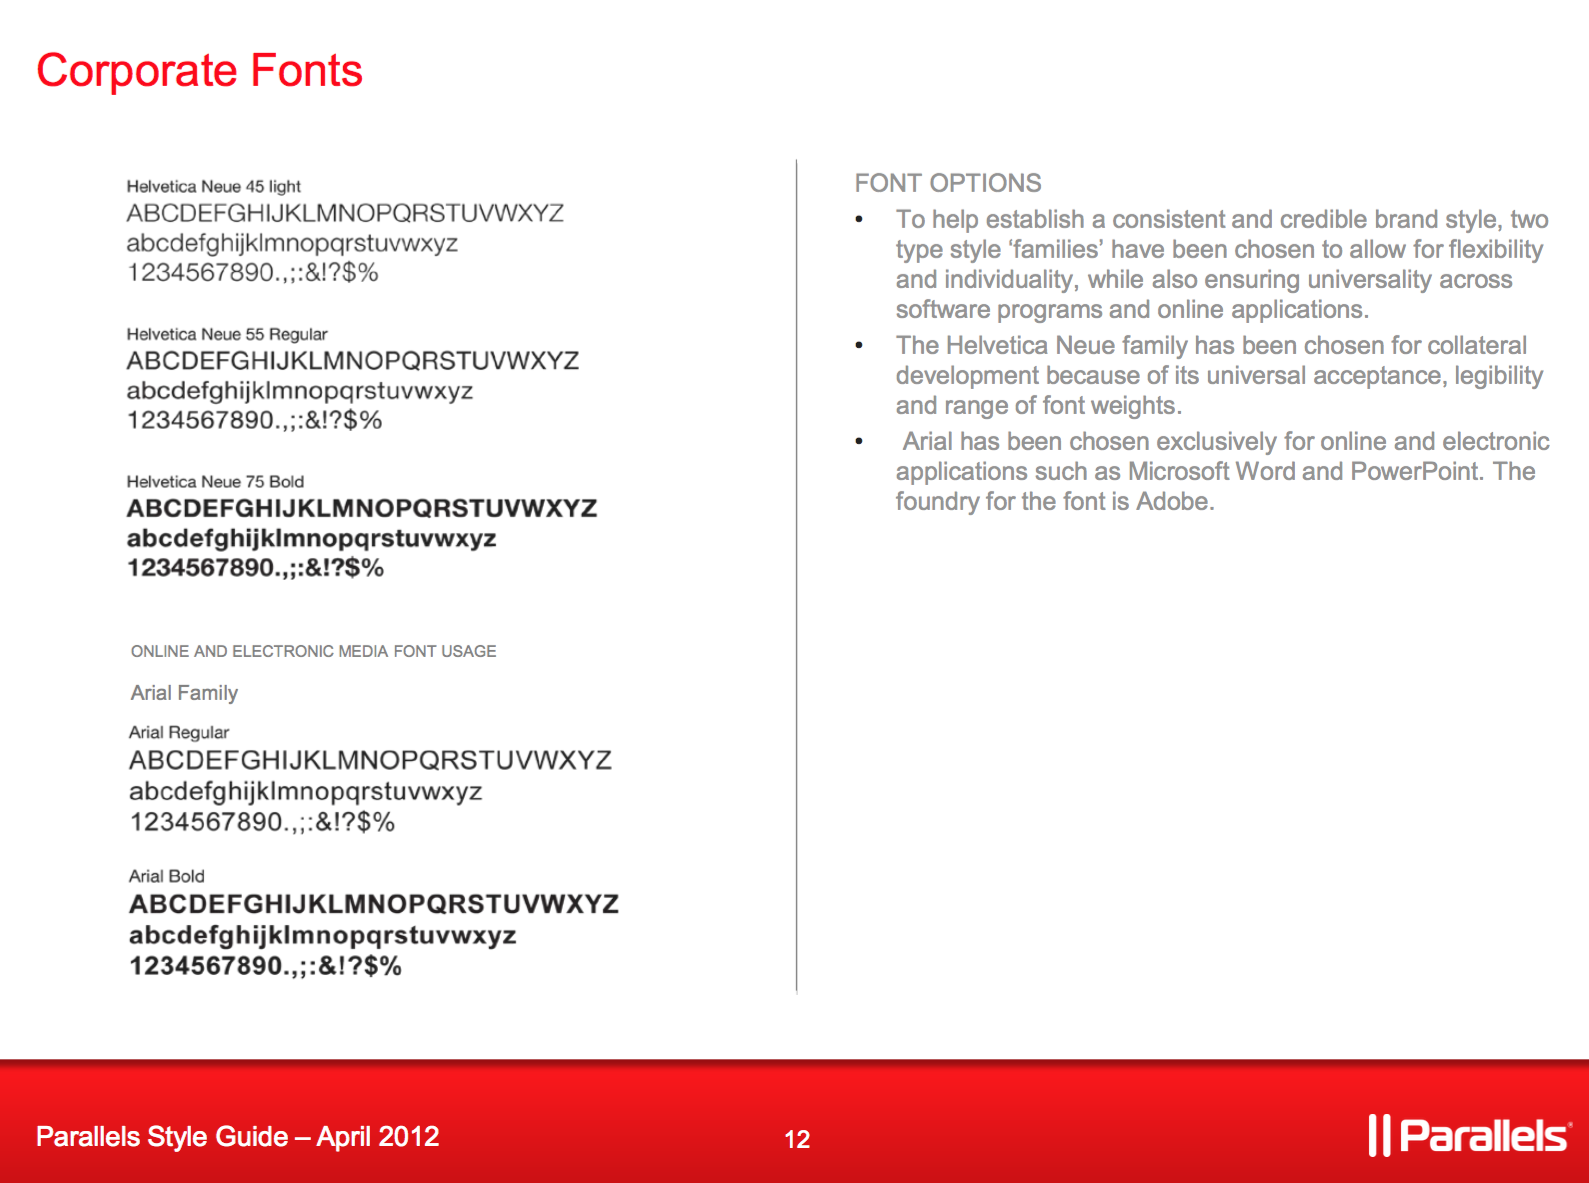 Corporate fonts guide for Parallels